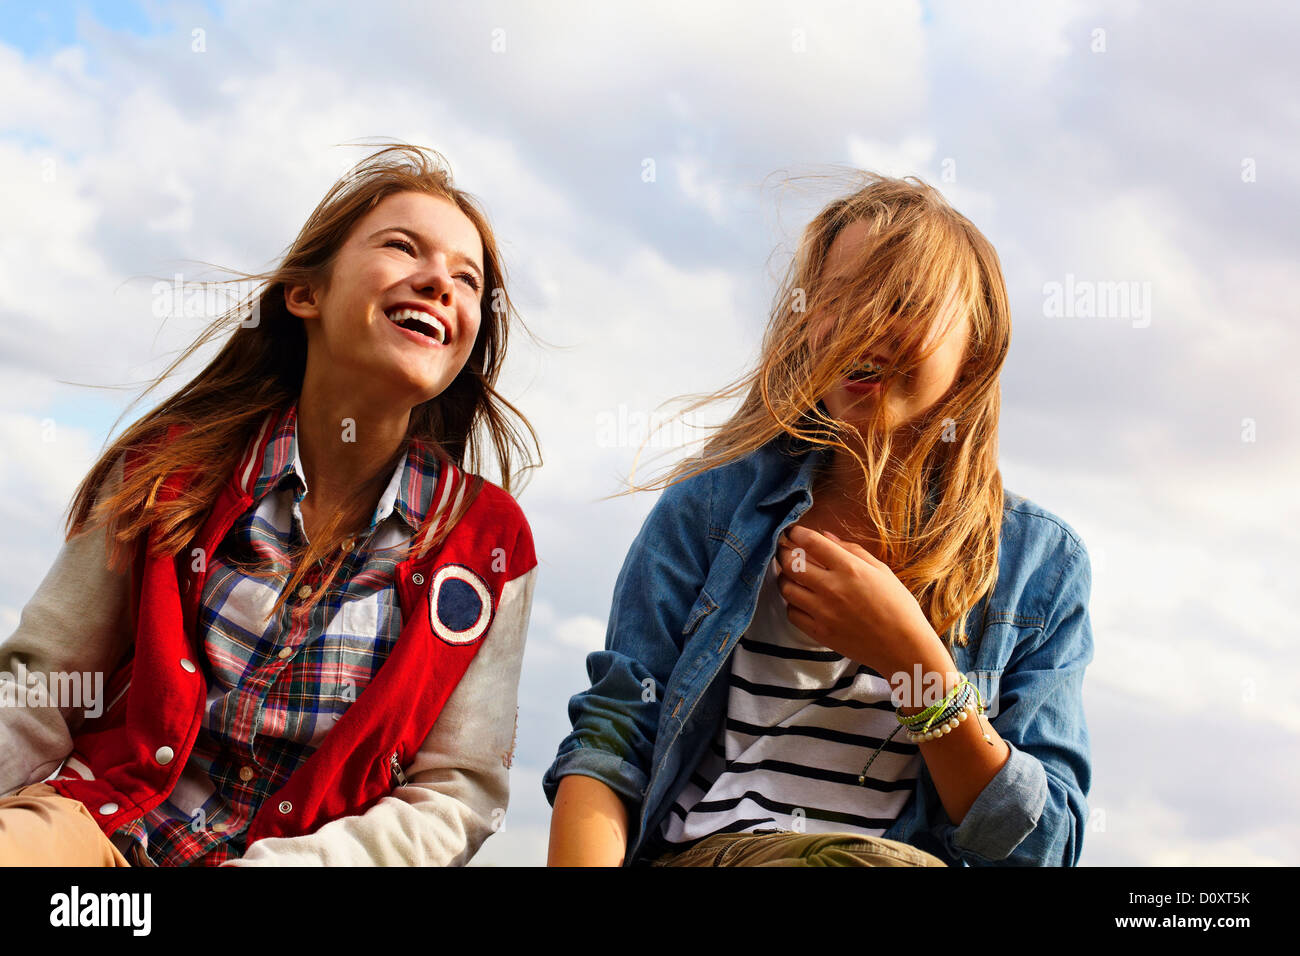 Teenage Girls Photo Stock